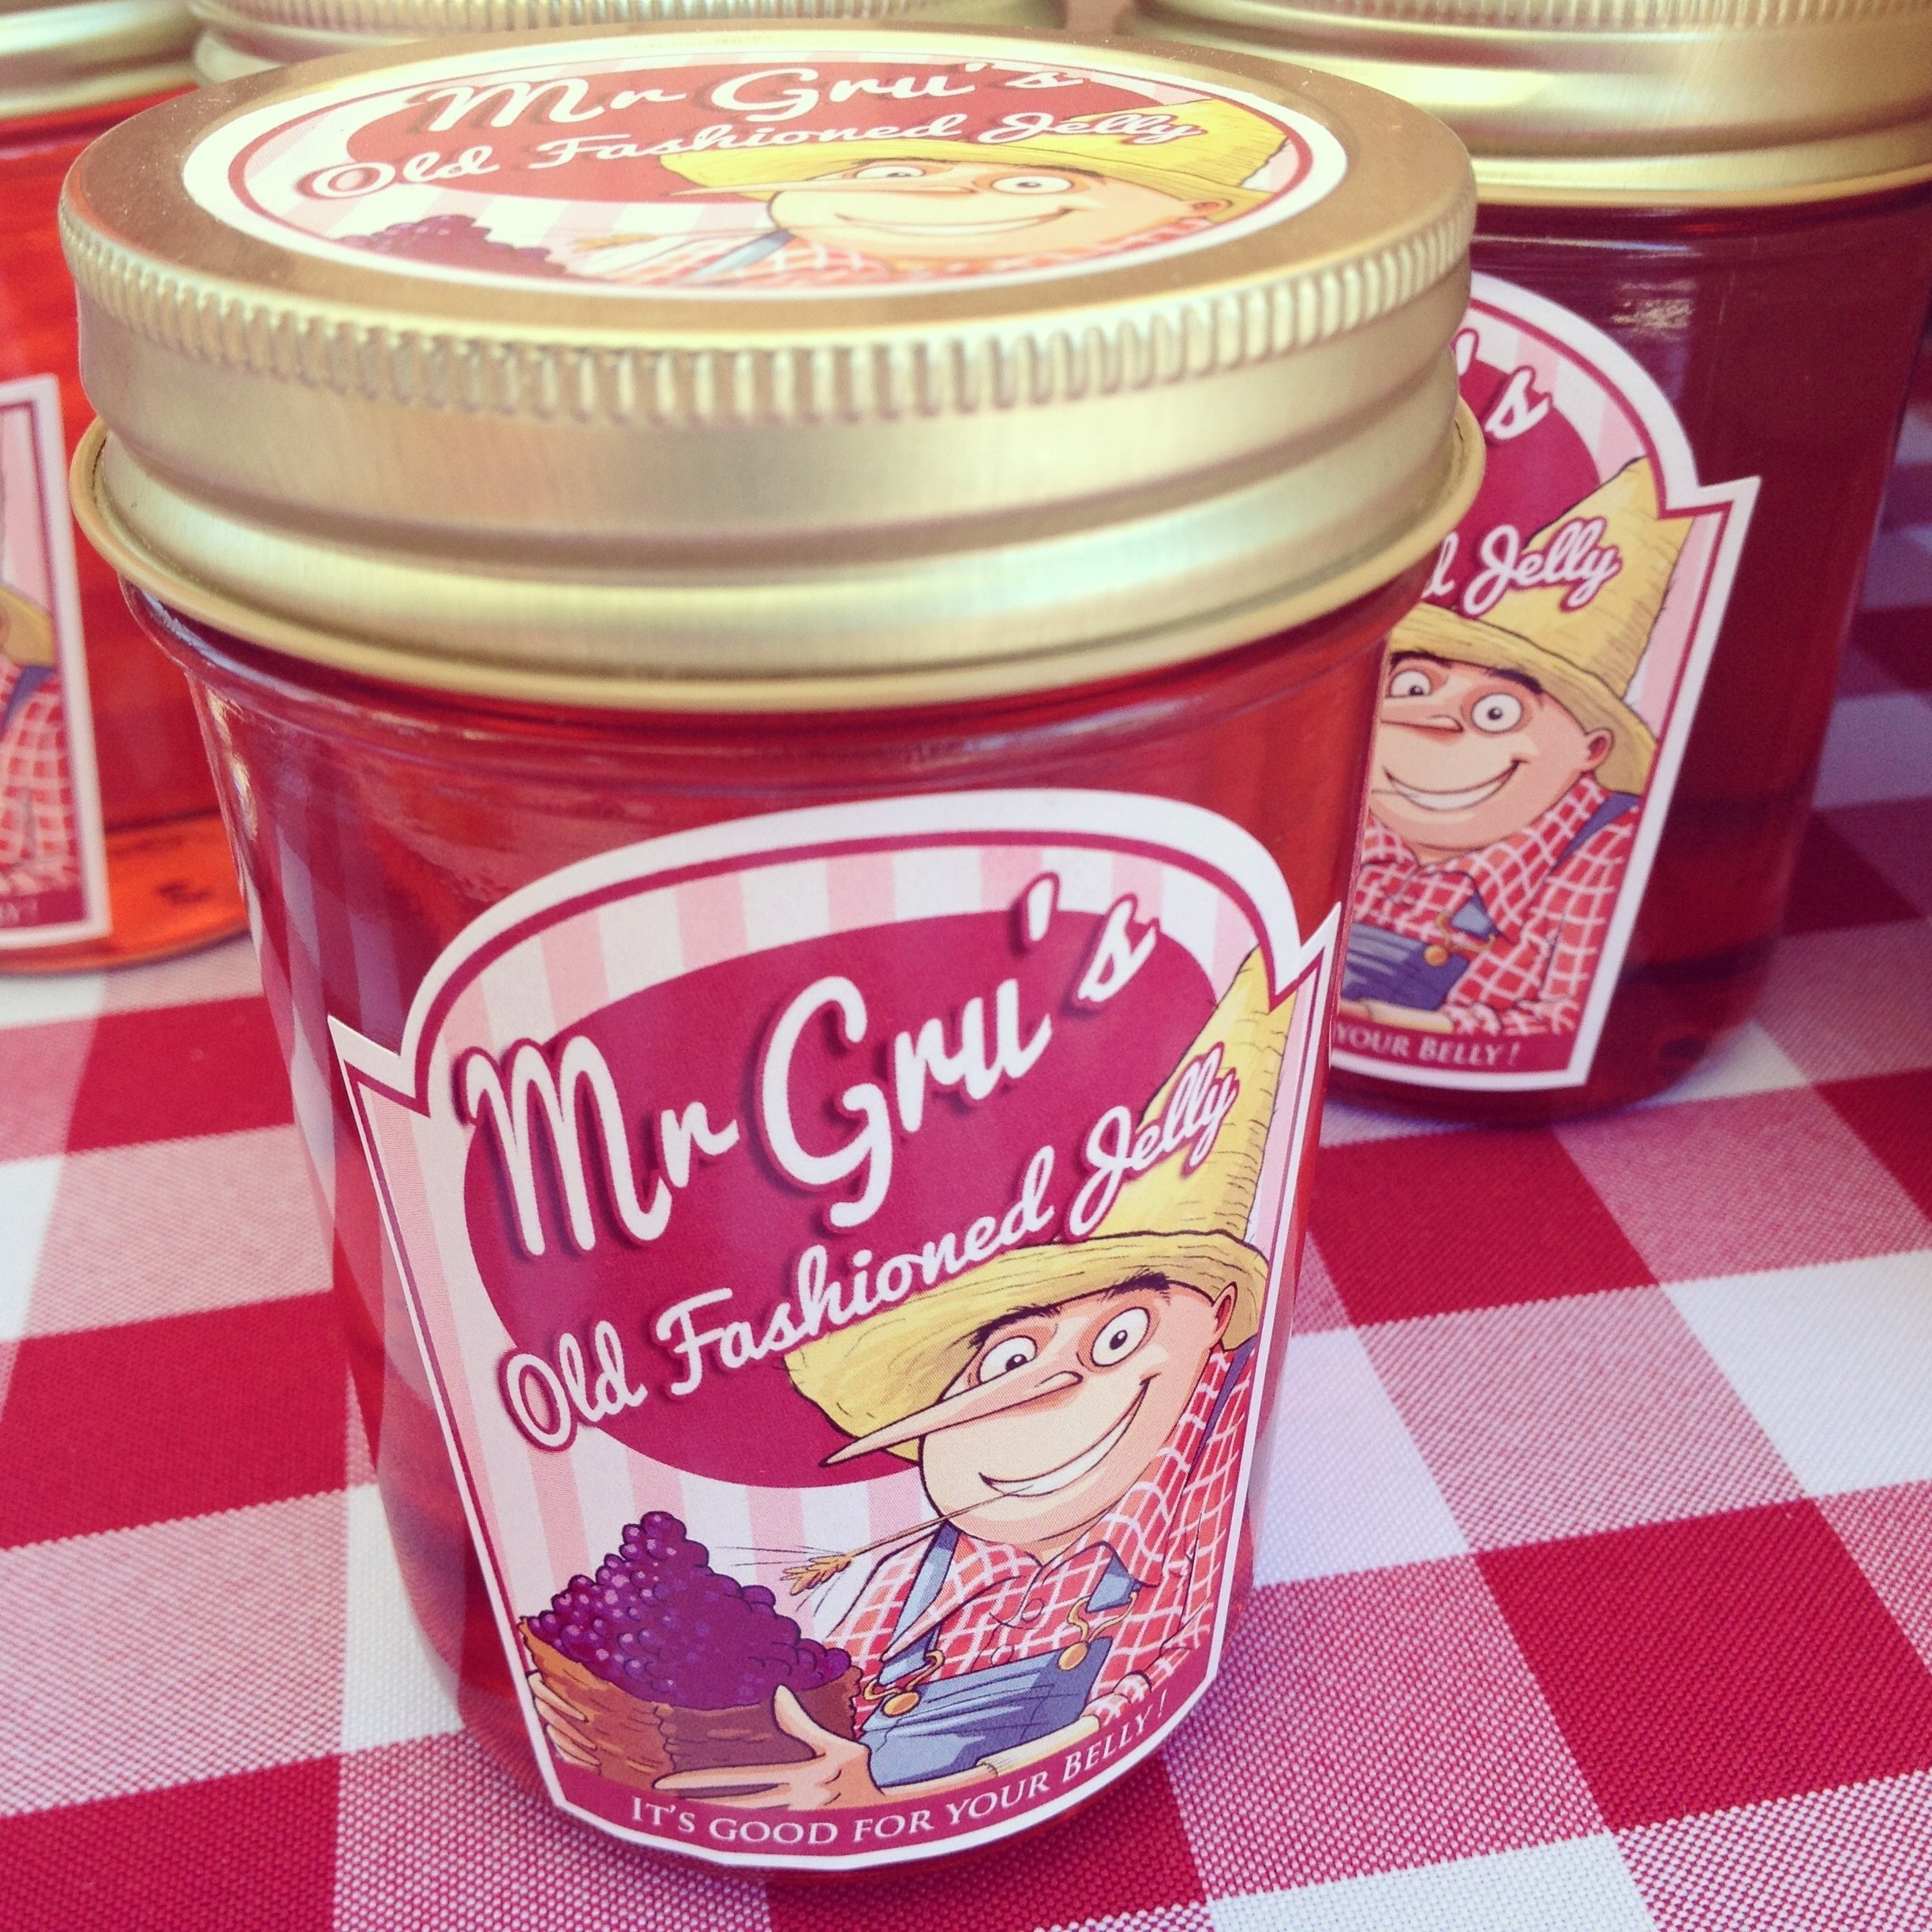 10 Nice Despicable Me 2 Birthday Party Ideas dm2 mr grus old fashioned jelly minion love pinterest 1 2020